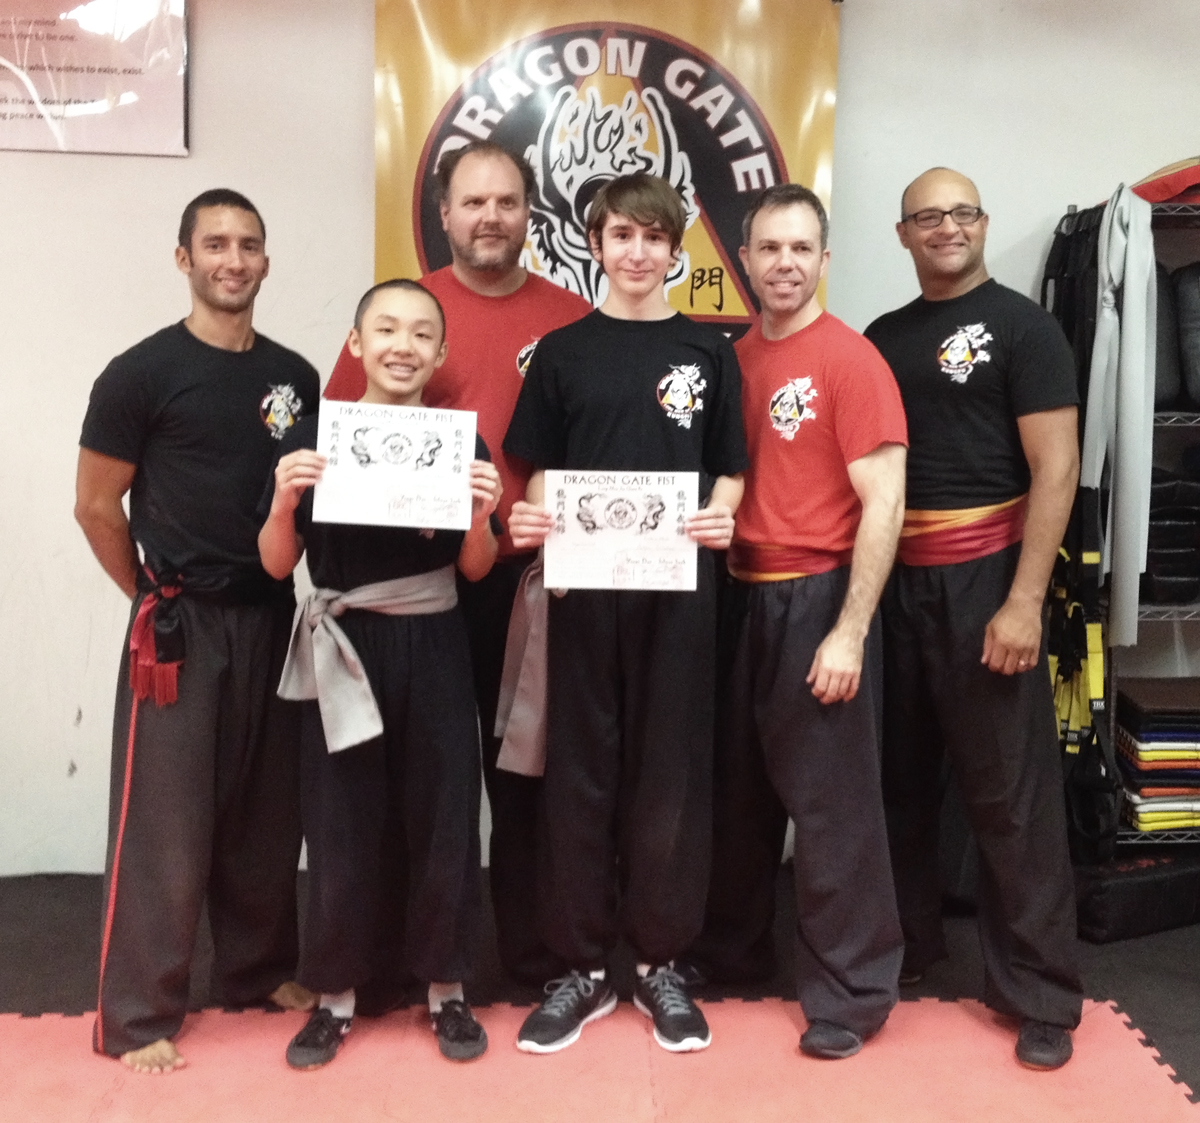 Shissu Eric Matta, Shifu John Bradley, Shifu Eric LEcuyer and Shifu Umar Arrastia stand with our two new Silver Sash students. Andrew Le and Adam Bradley.